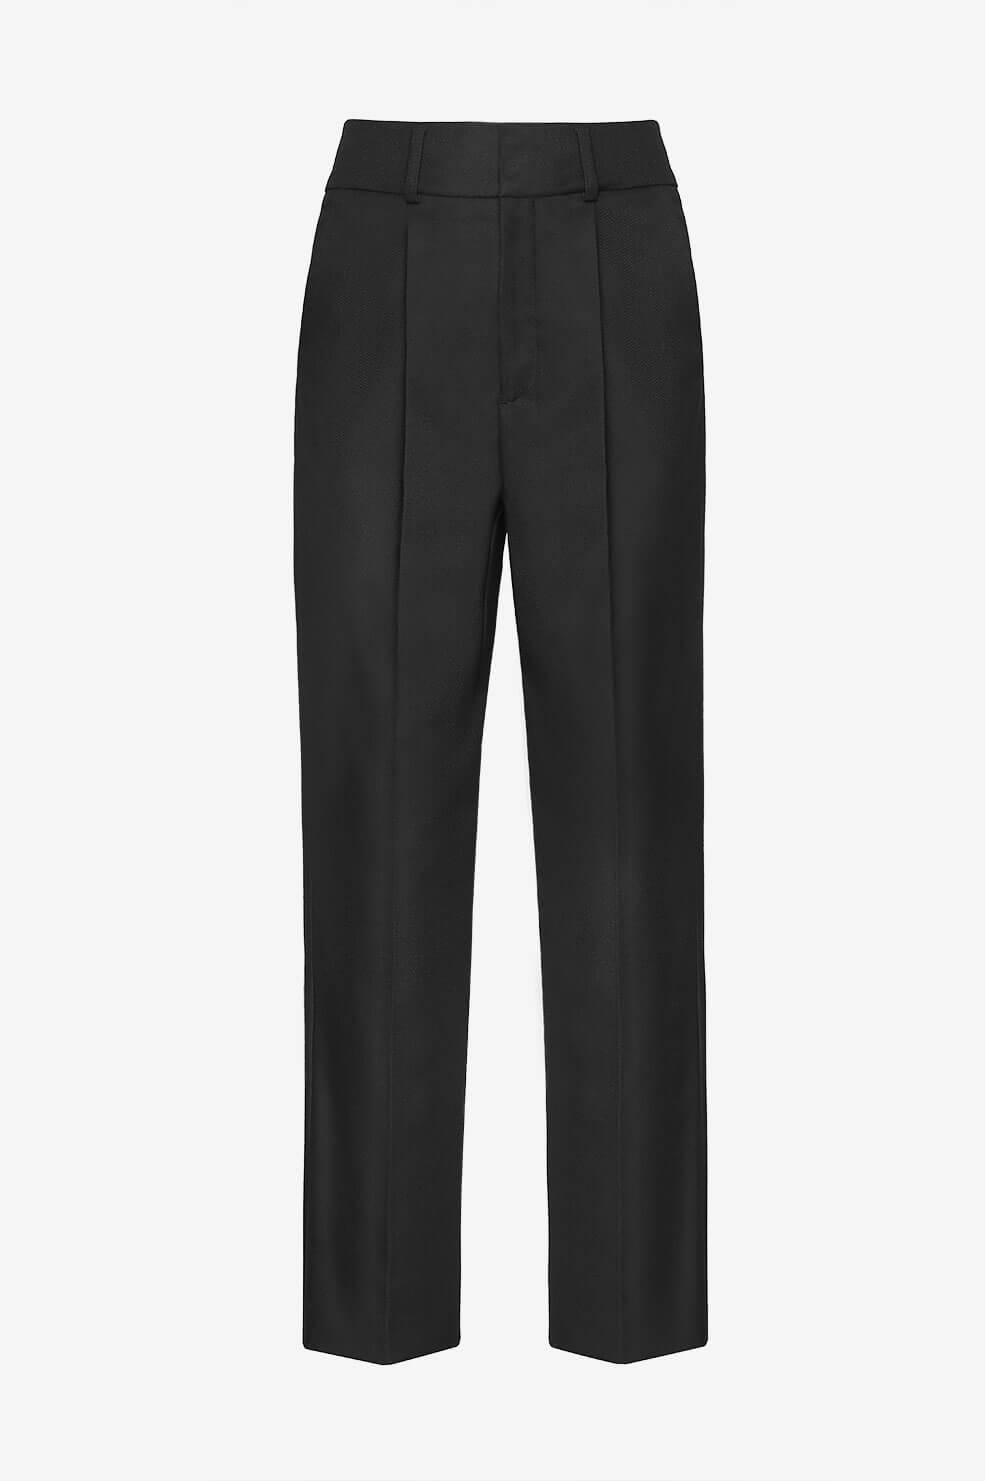 ANINE BING Becky Trouser - Black